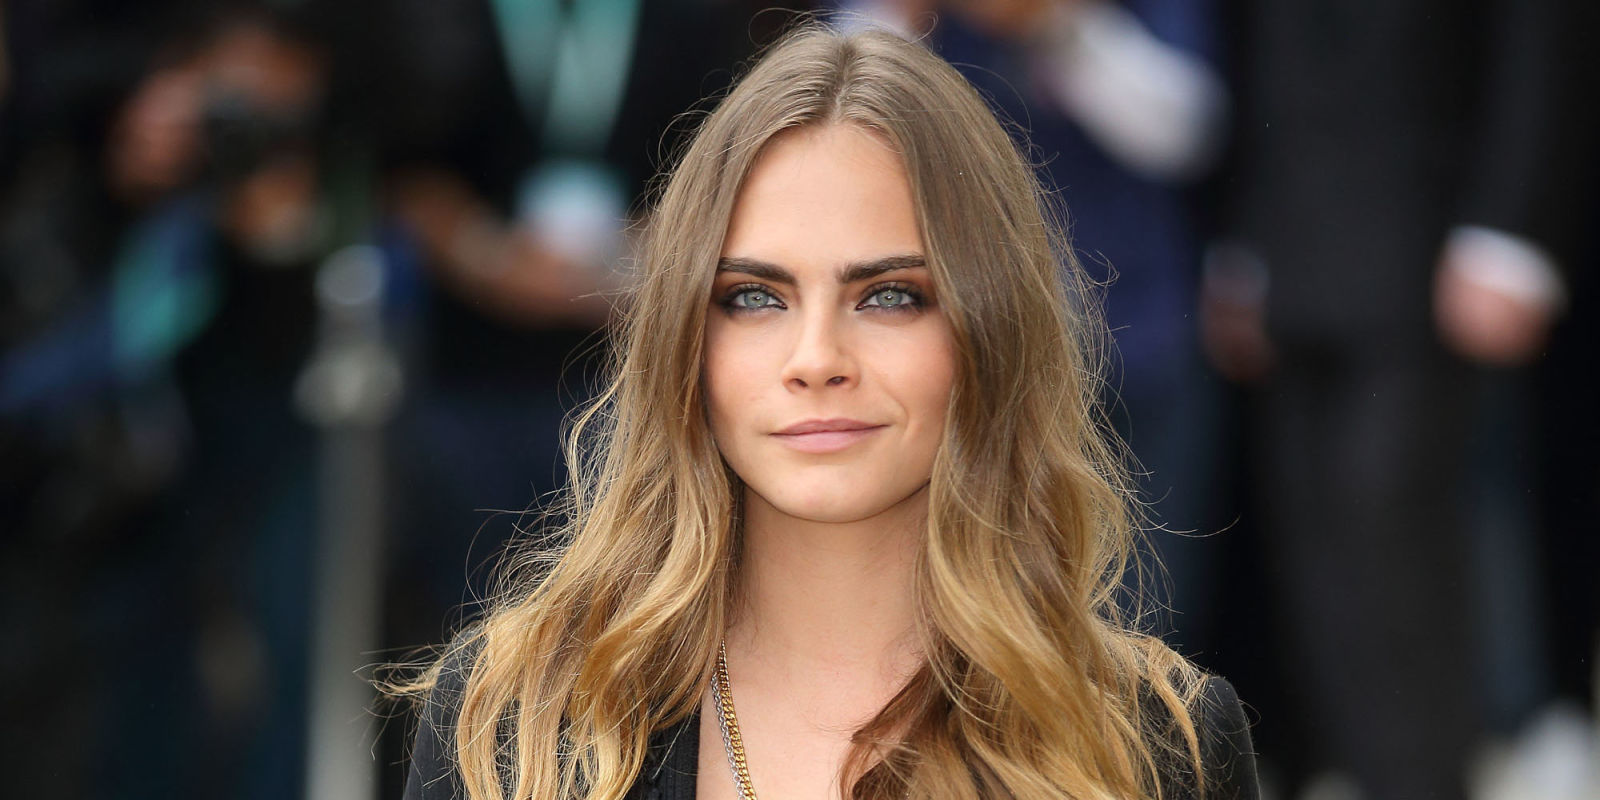 cara delevingne writes essays about leaving modeling self doubt